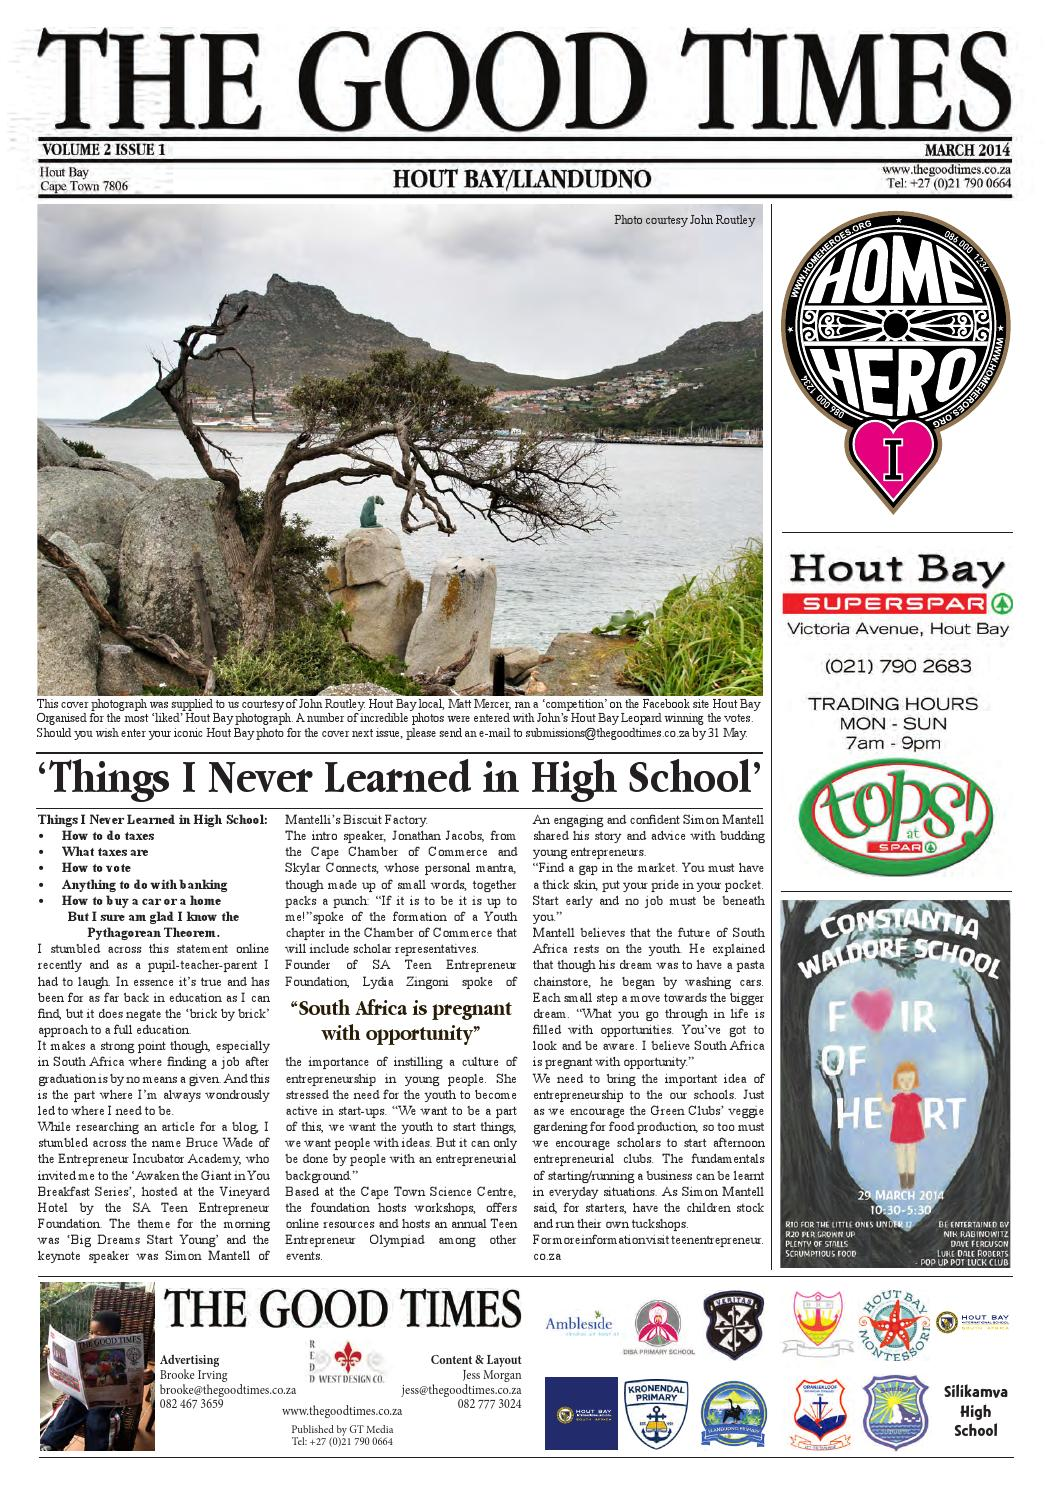 The good times school newspaper hout bay march 2014 by the good the good times school newspaper hout bay march 2014 by the good times school newspaper issuu fandeluxe Gallery